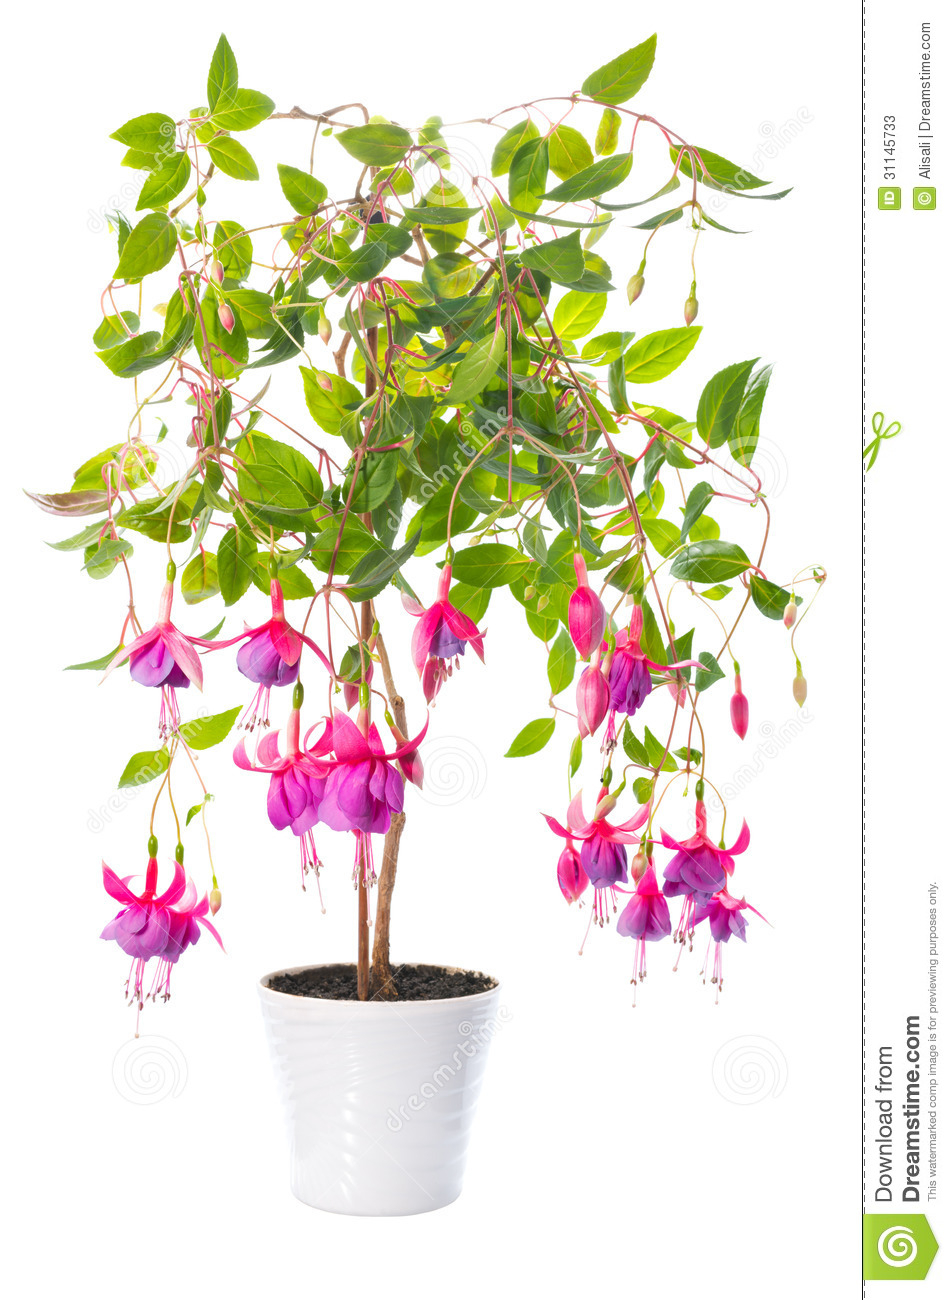 plantes d 39 int rieur fuchsia de fleur dans le pot de fleur tennessee walts image stock image. Black Bedroom Furniture Sets. Home Design Ideas